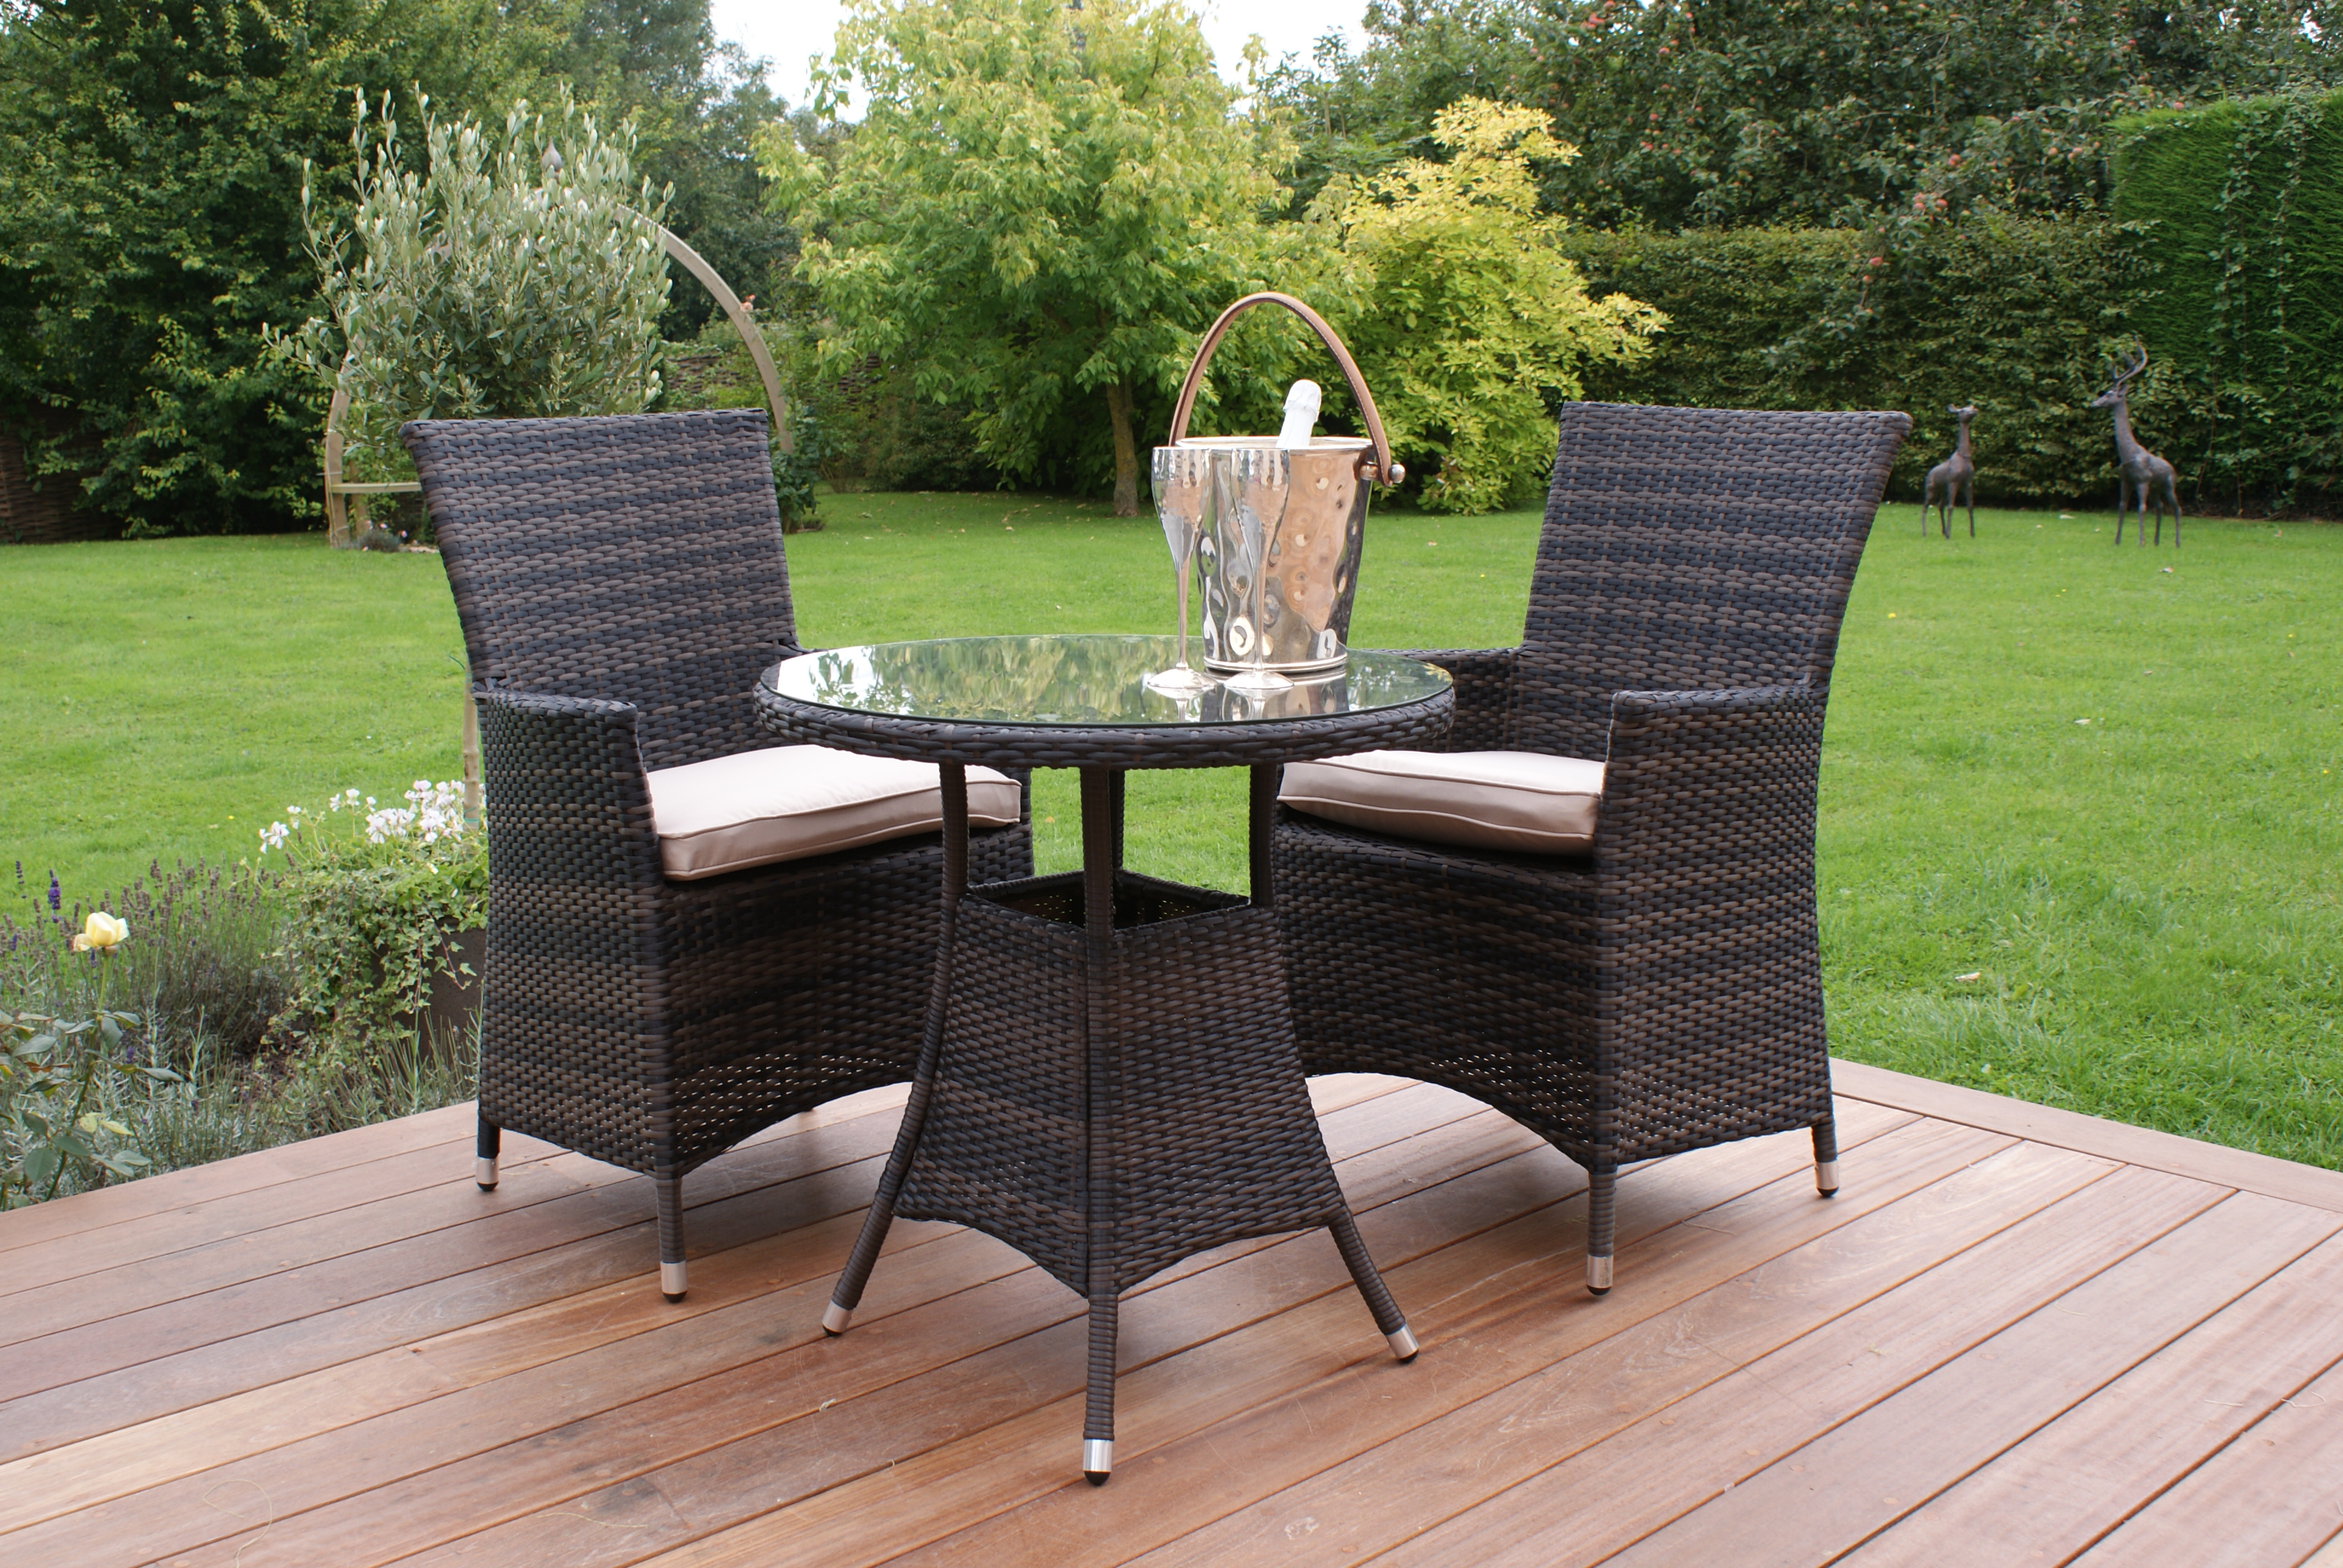 Garden Furniture Enfield garden furniture crews hill enfield - container gardening ideas